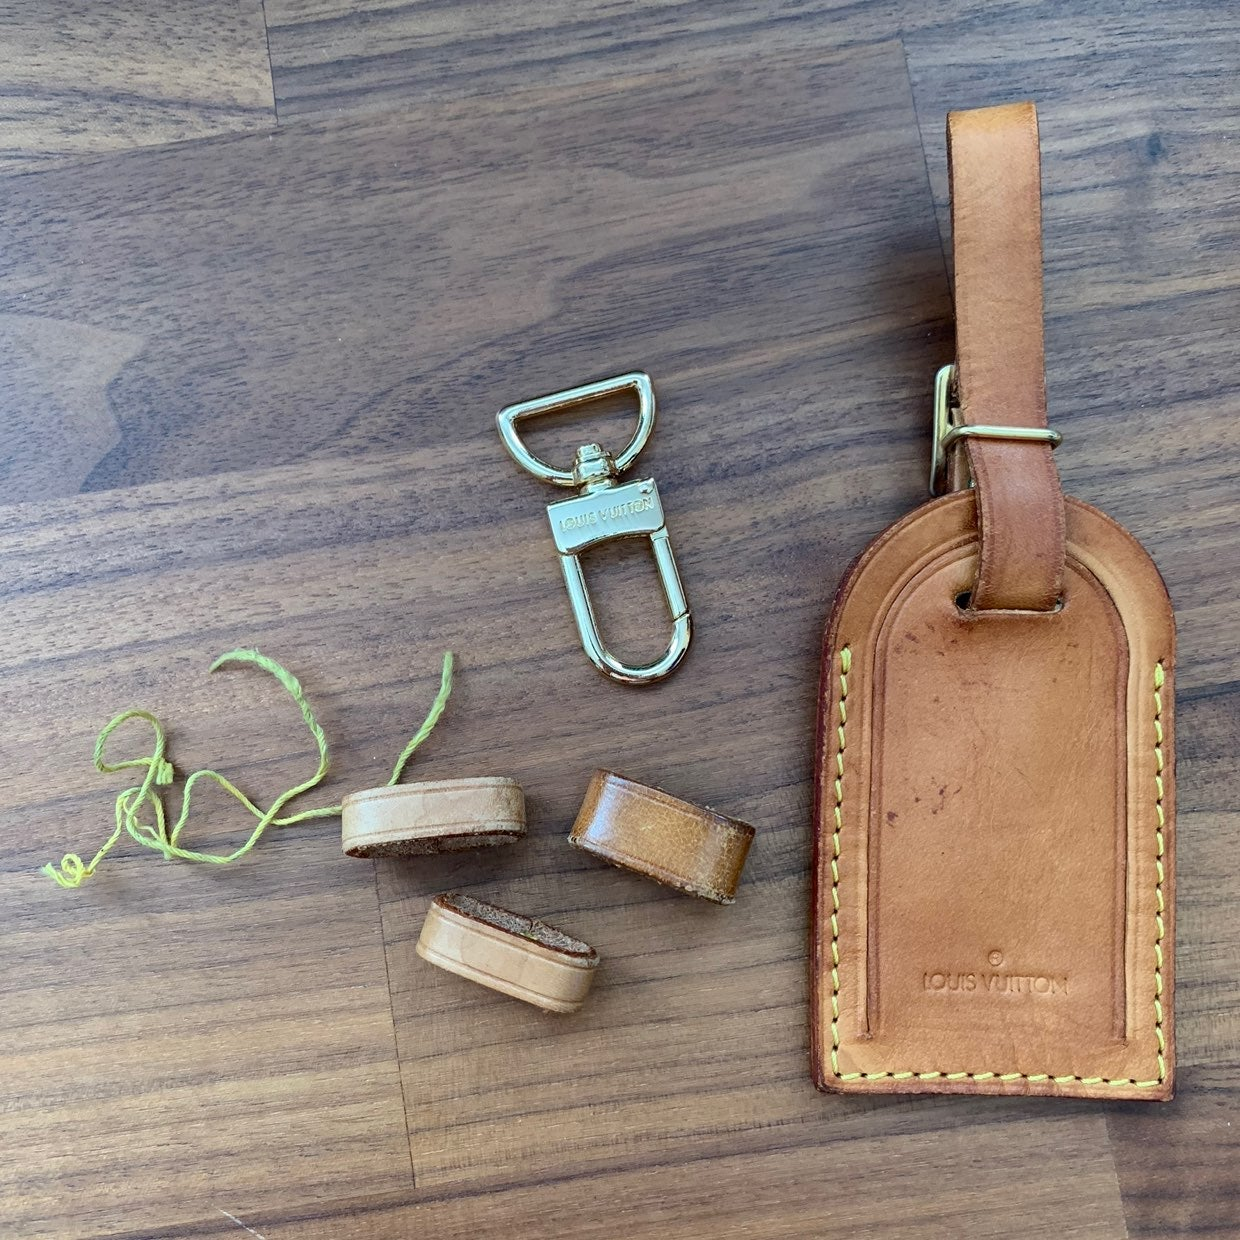 Louis Vuitton Spare Parts Luggage Tag